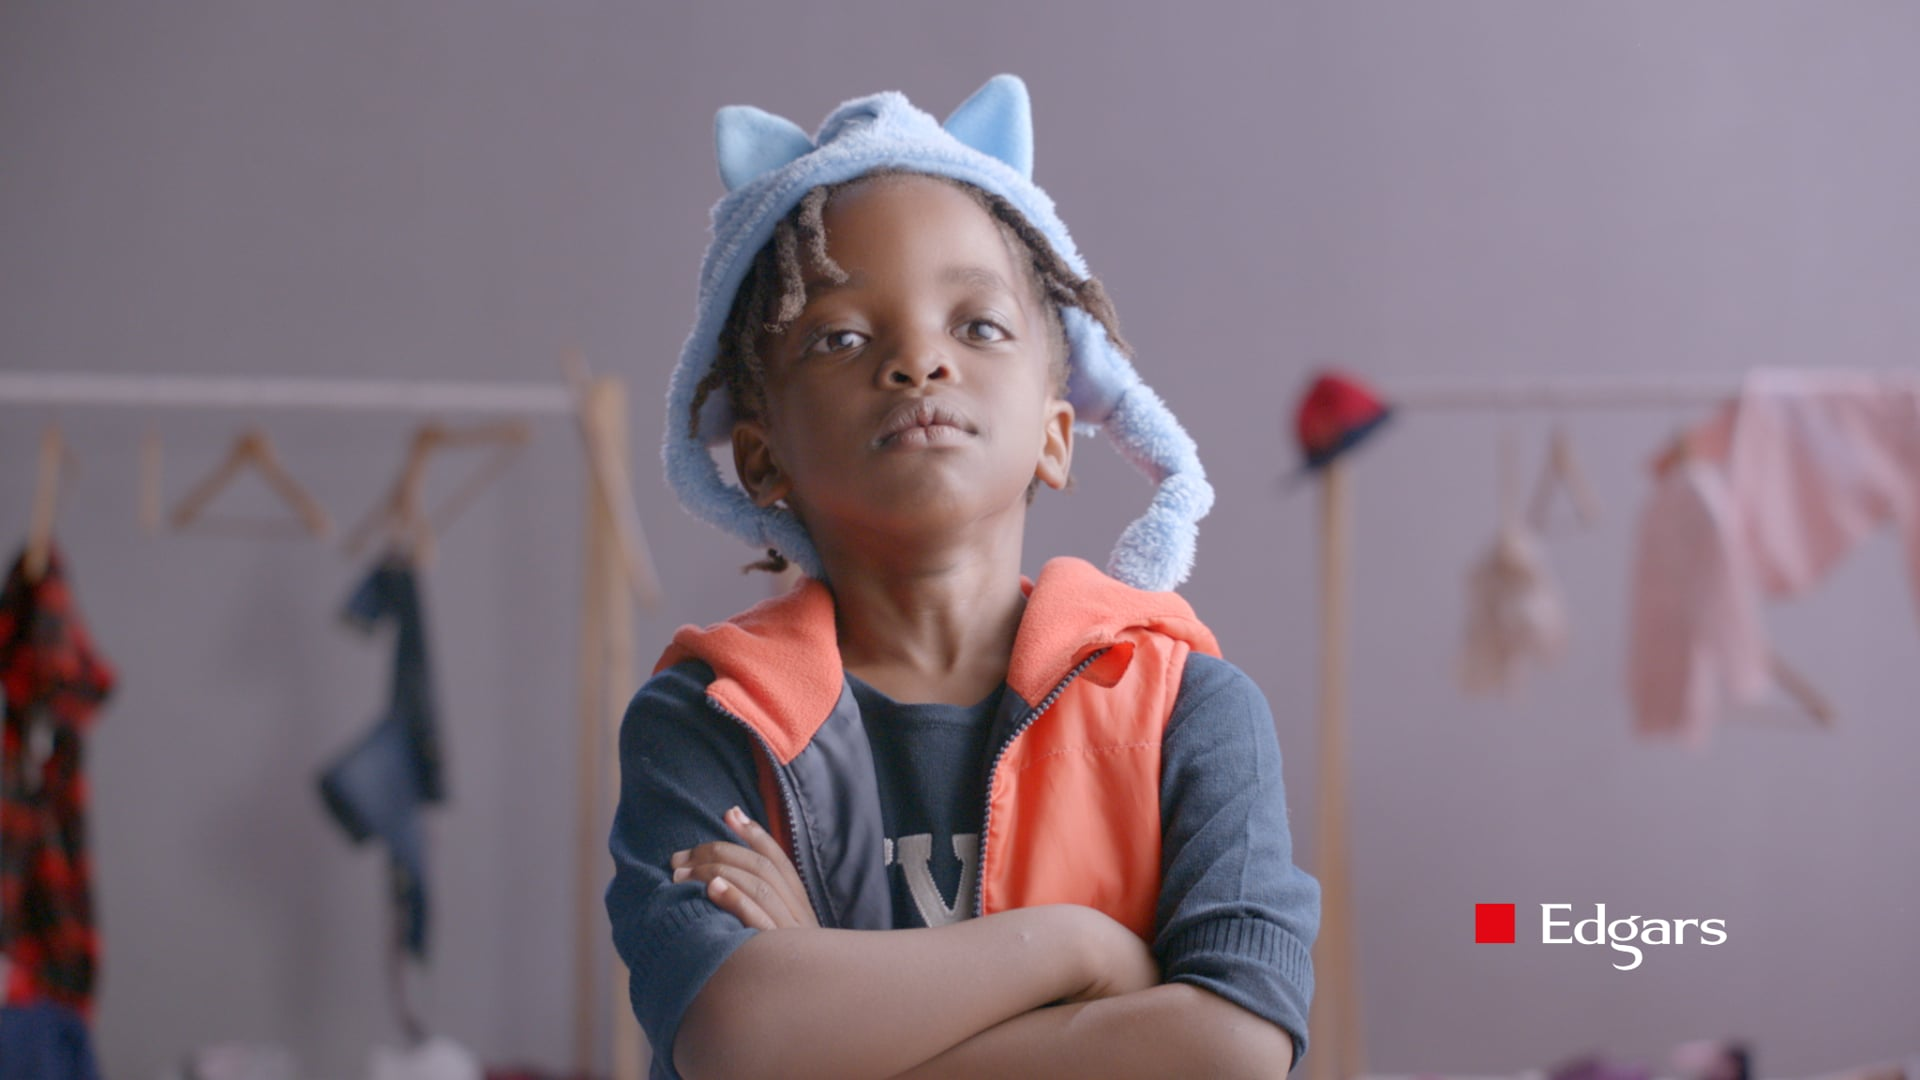 Edgars 'Styled by Kids'